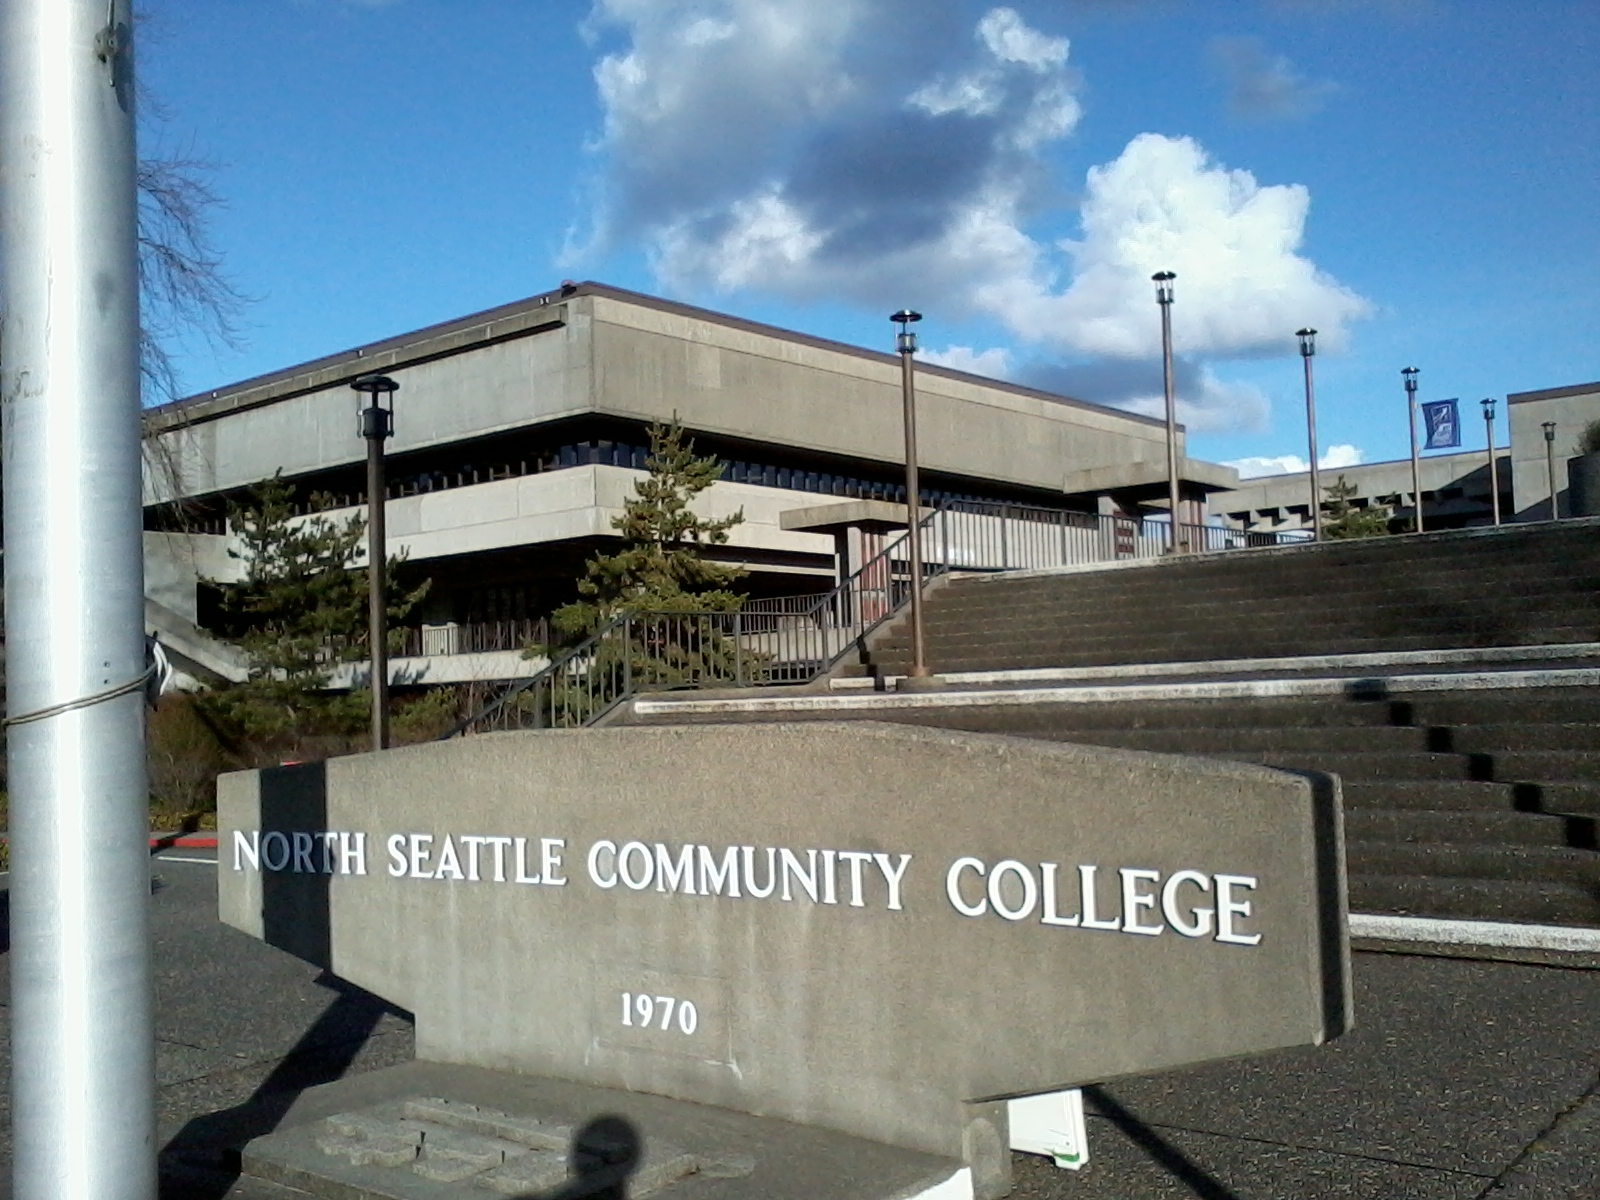 2%2f2e%2fnorth seattle community college